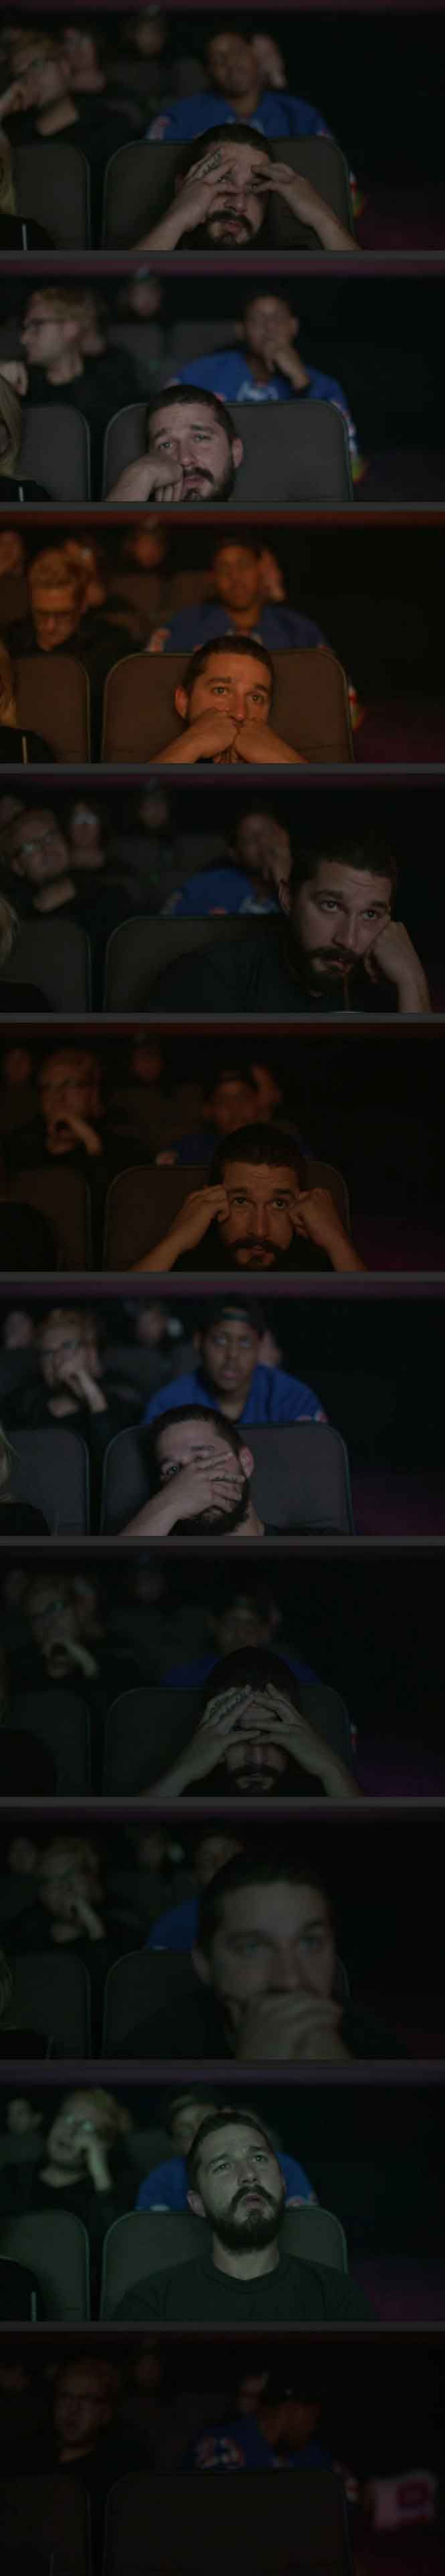 Shia LaBeouf's reaction to watching Transformers: Dark of The Moon